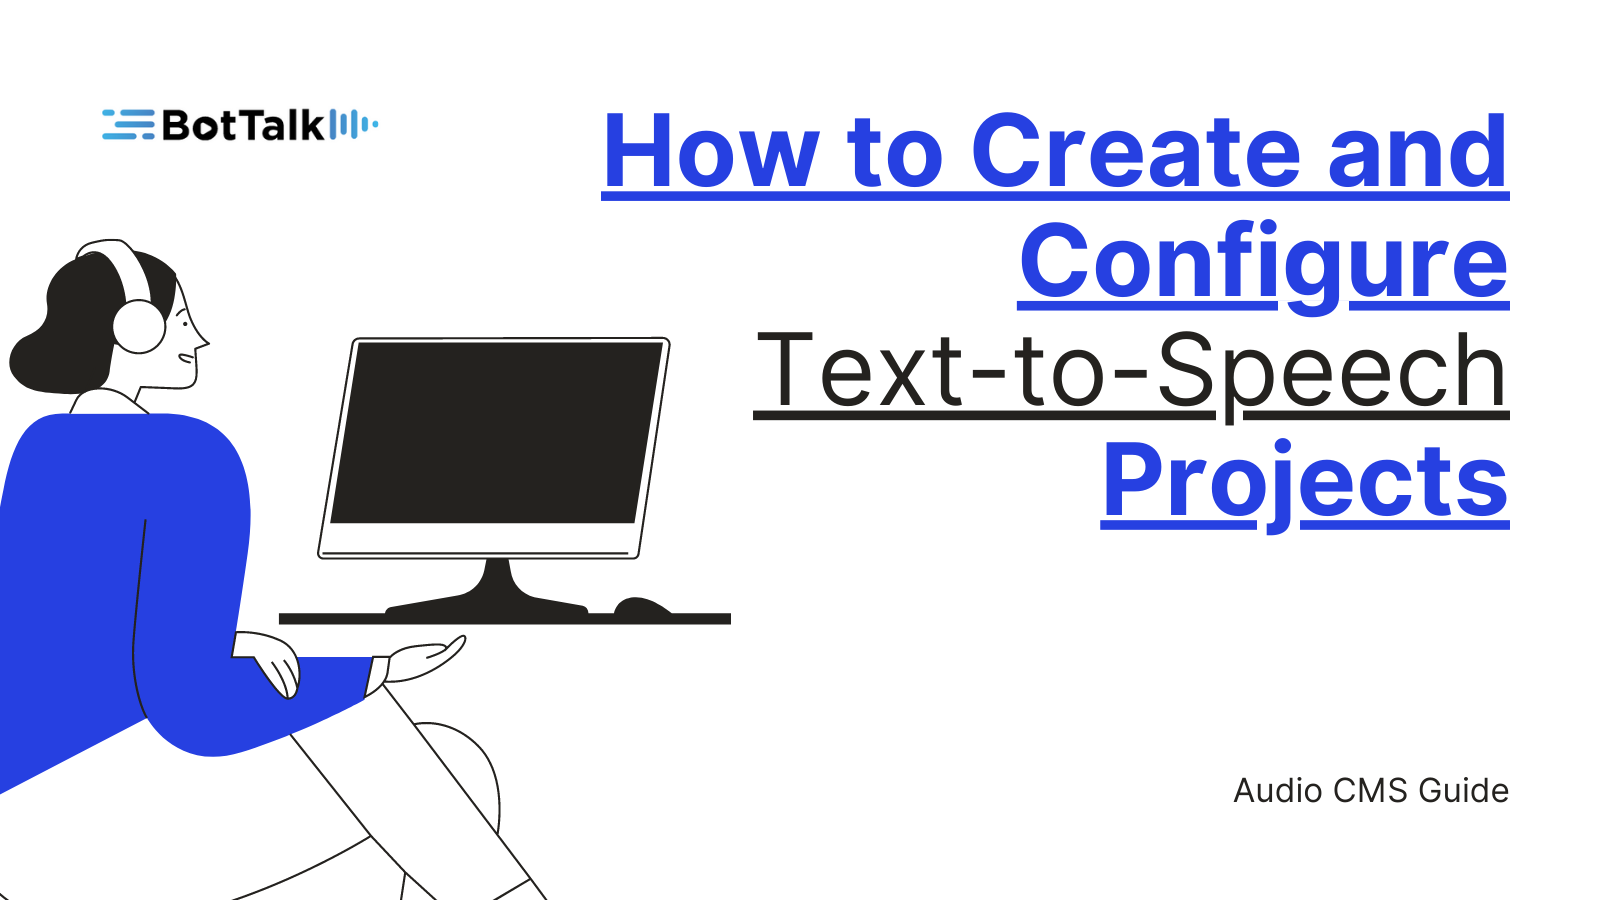 [Docs] How to Create and Configure Text-to-Speech Projects